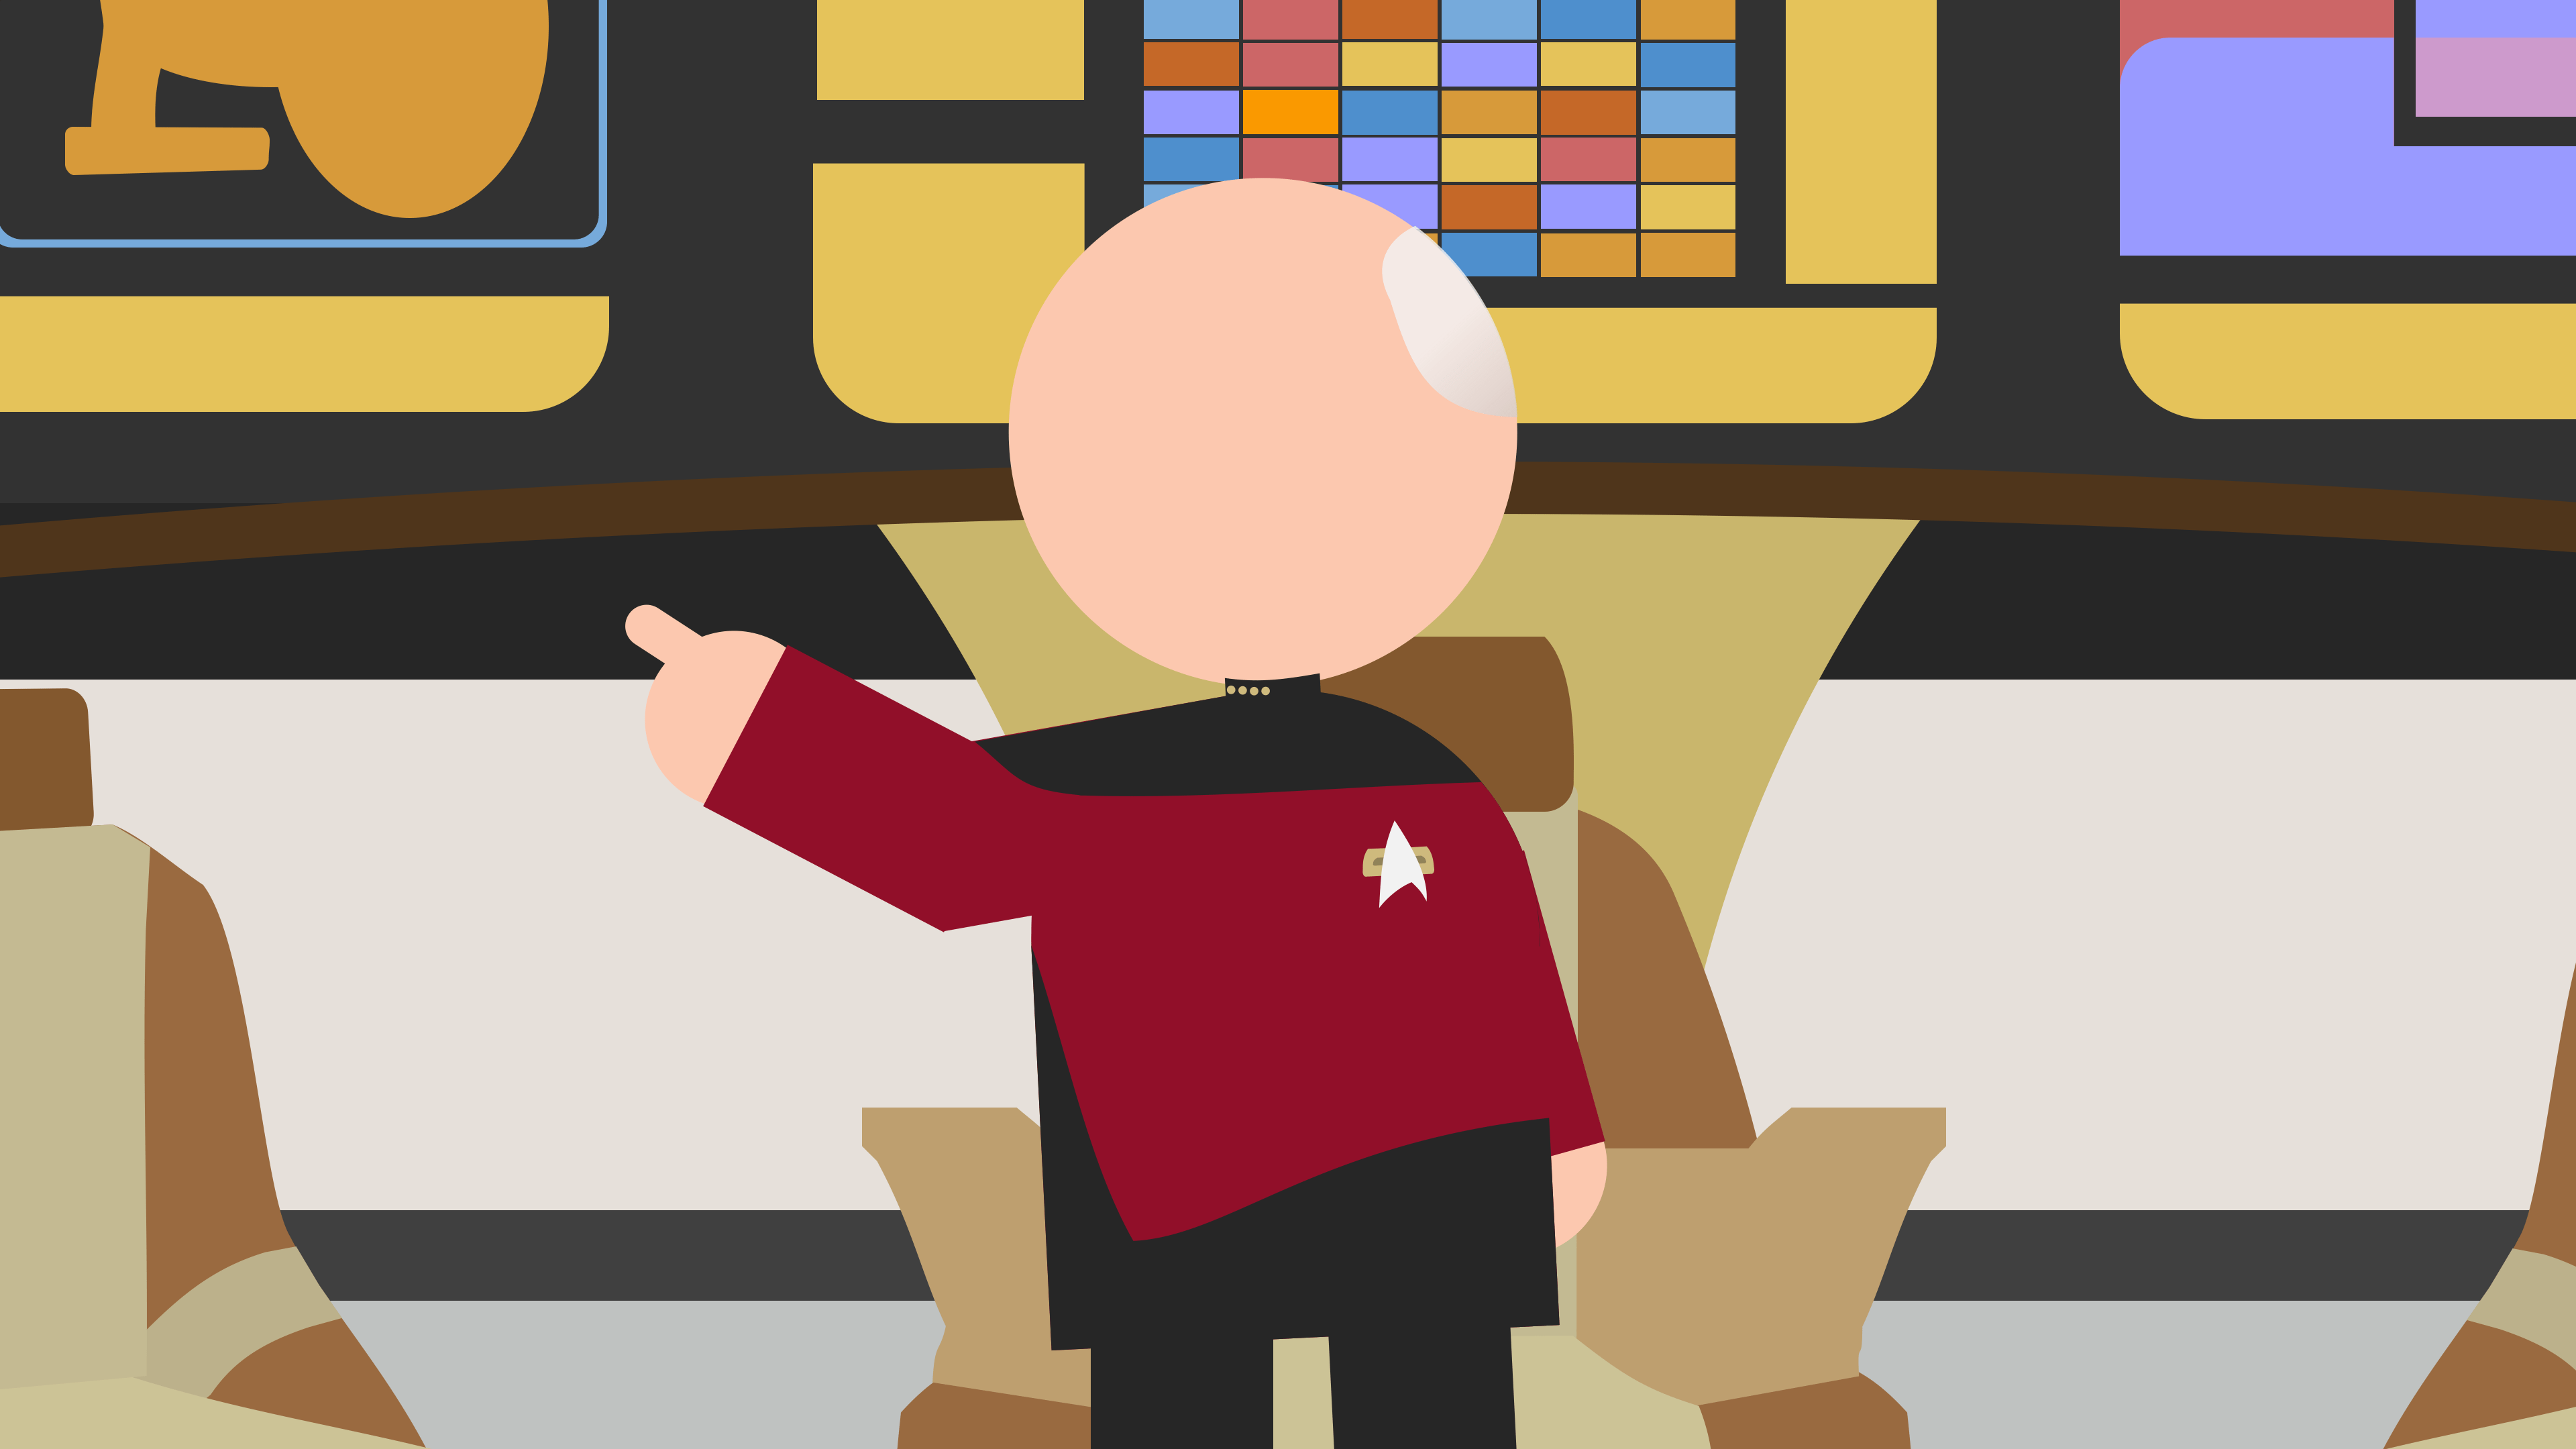 The USS Enterprise's captain Jean-Luc Picard gives an order